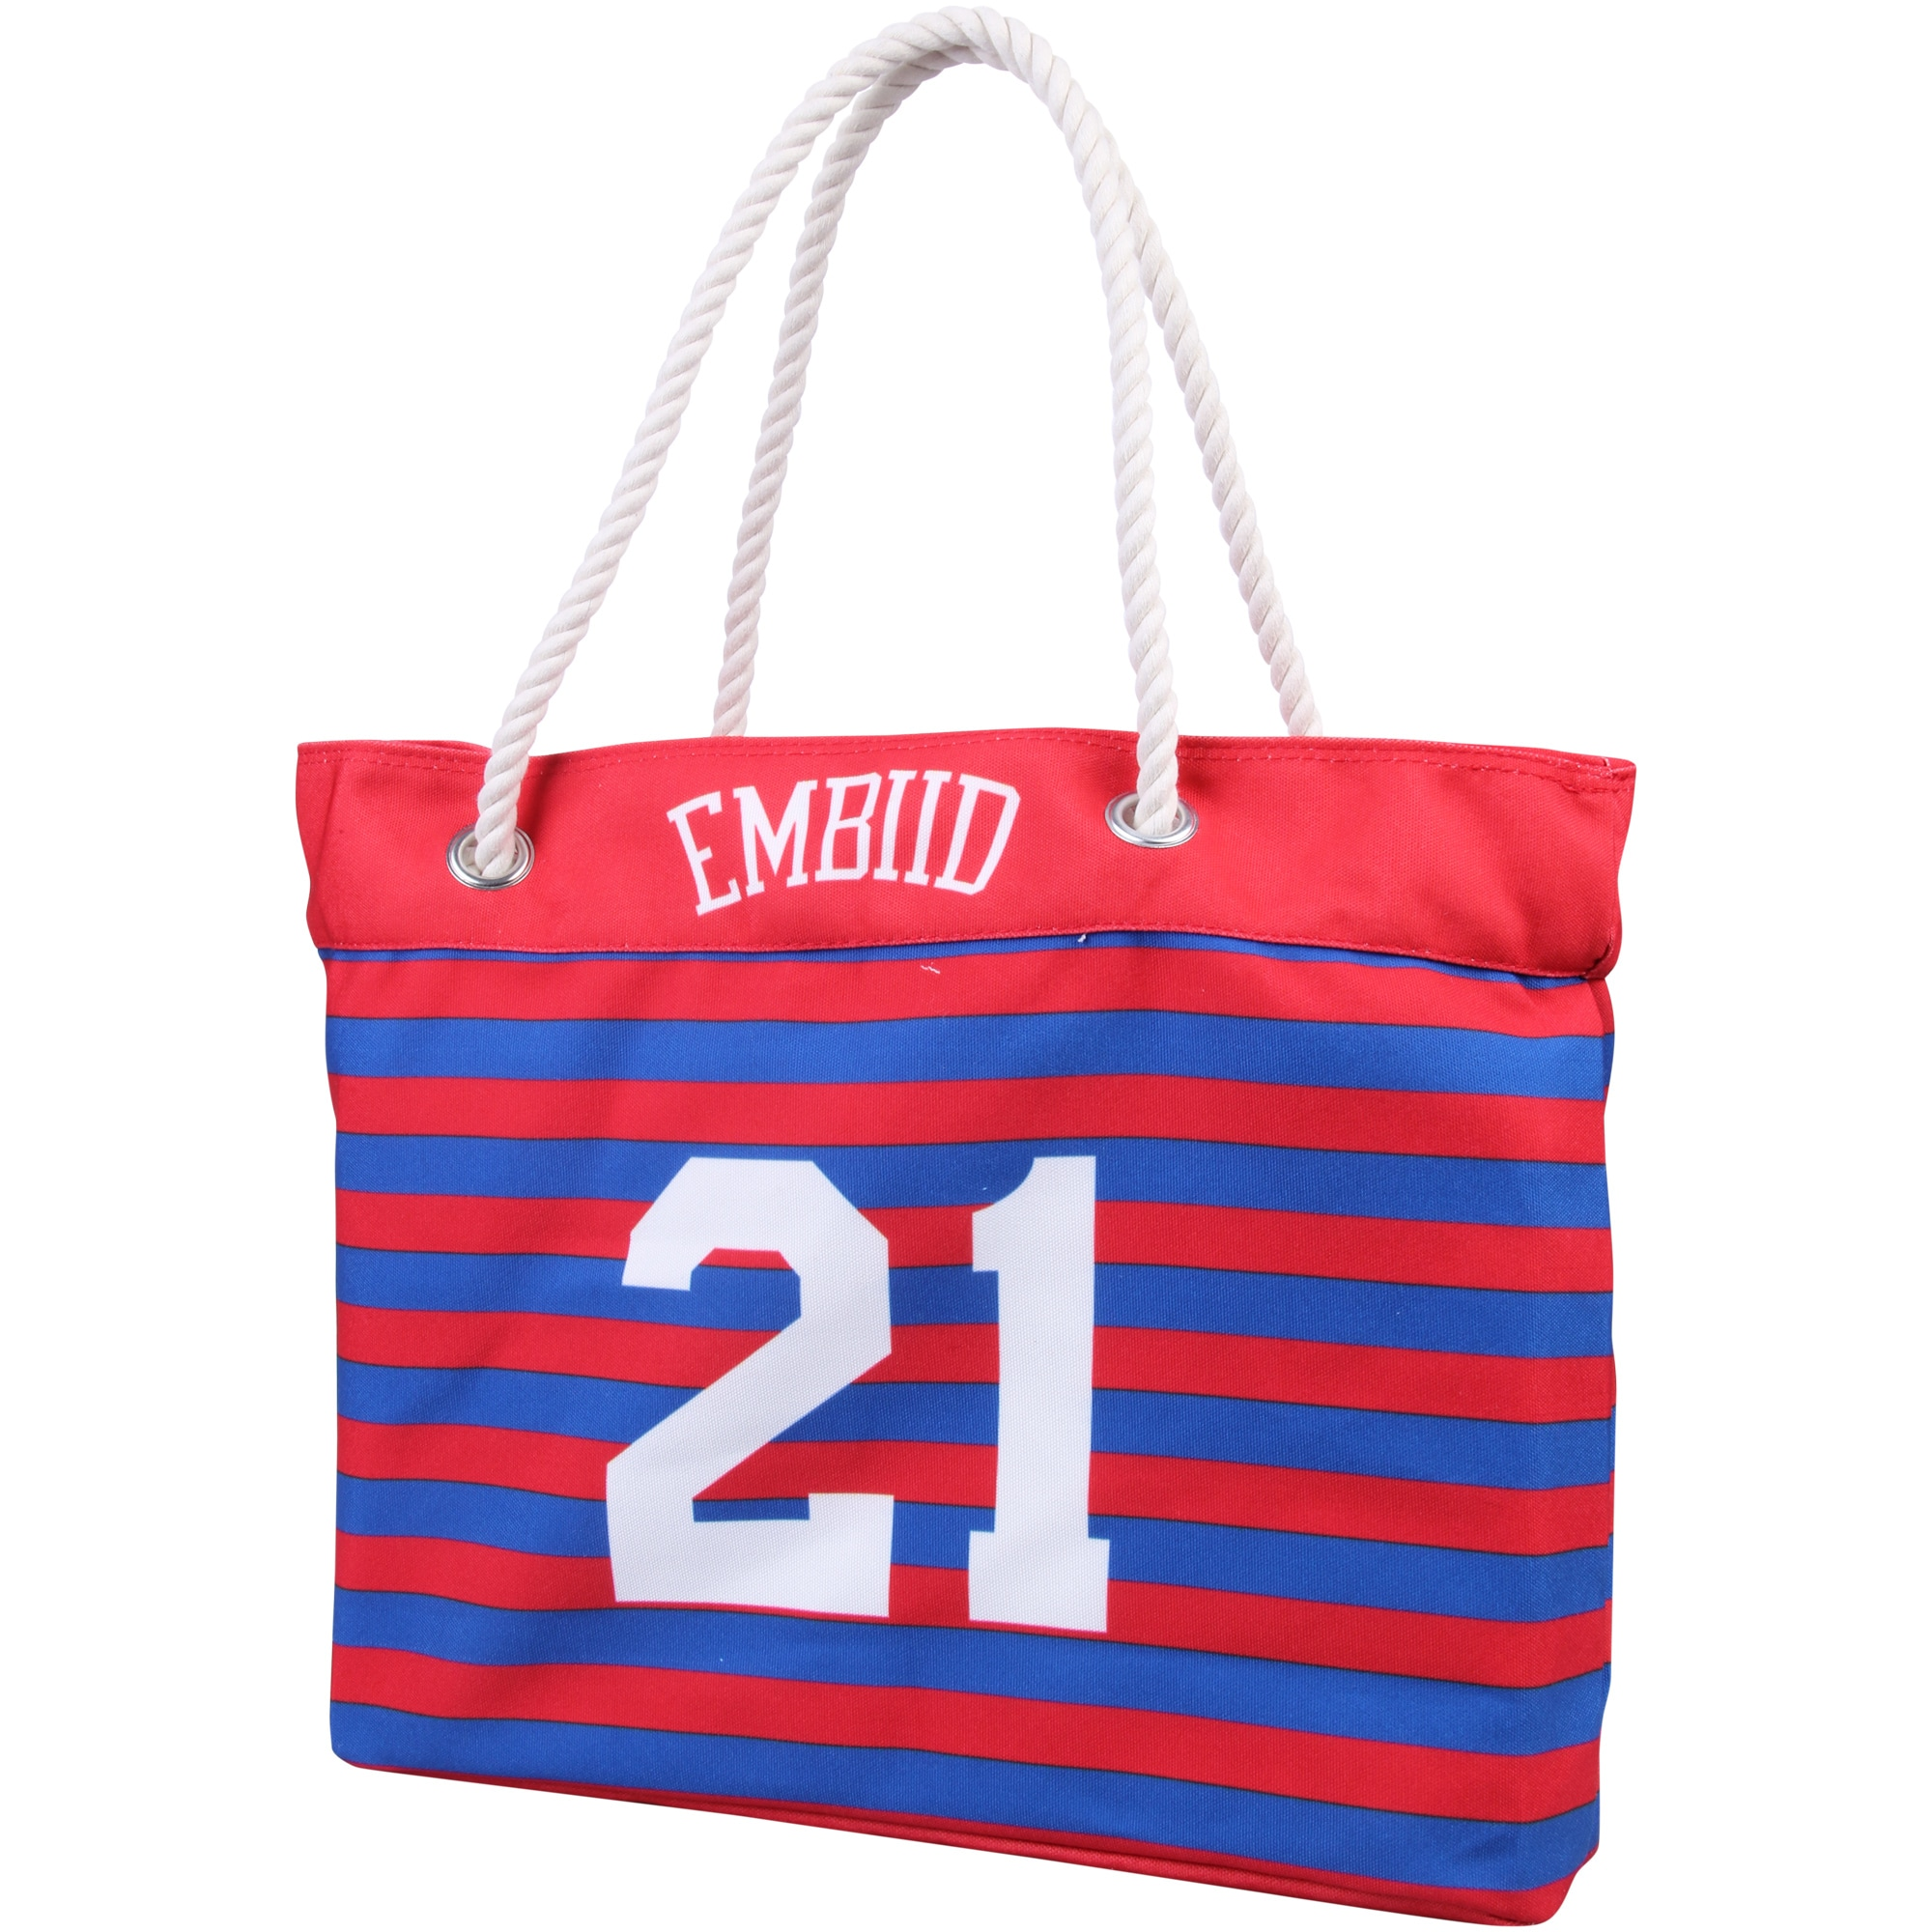 Joel Embiid Philadelphia 76ers Women's Player Nautical Stripe Tote Bag - Red